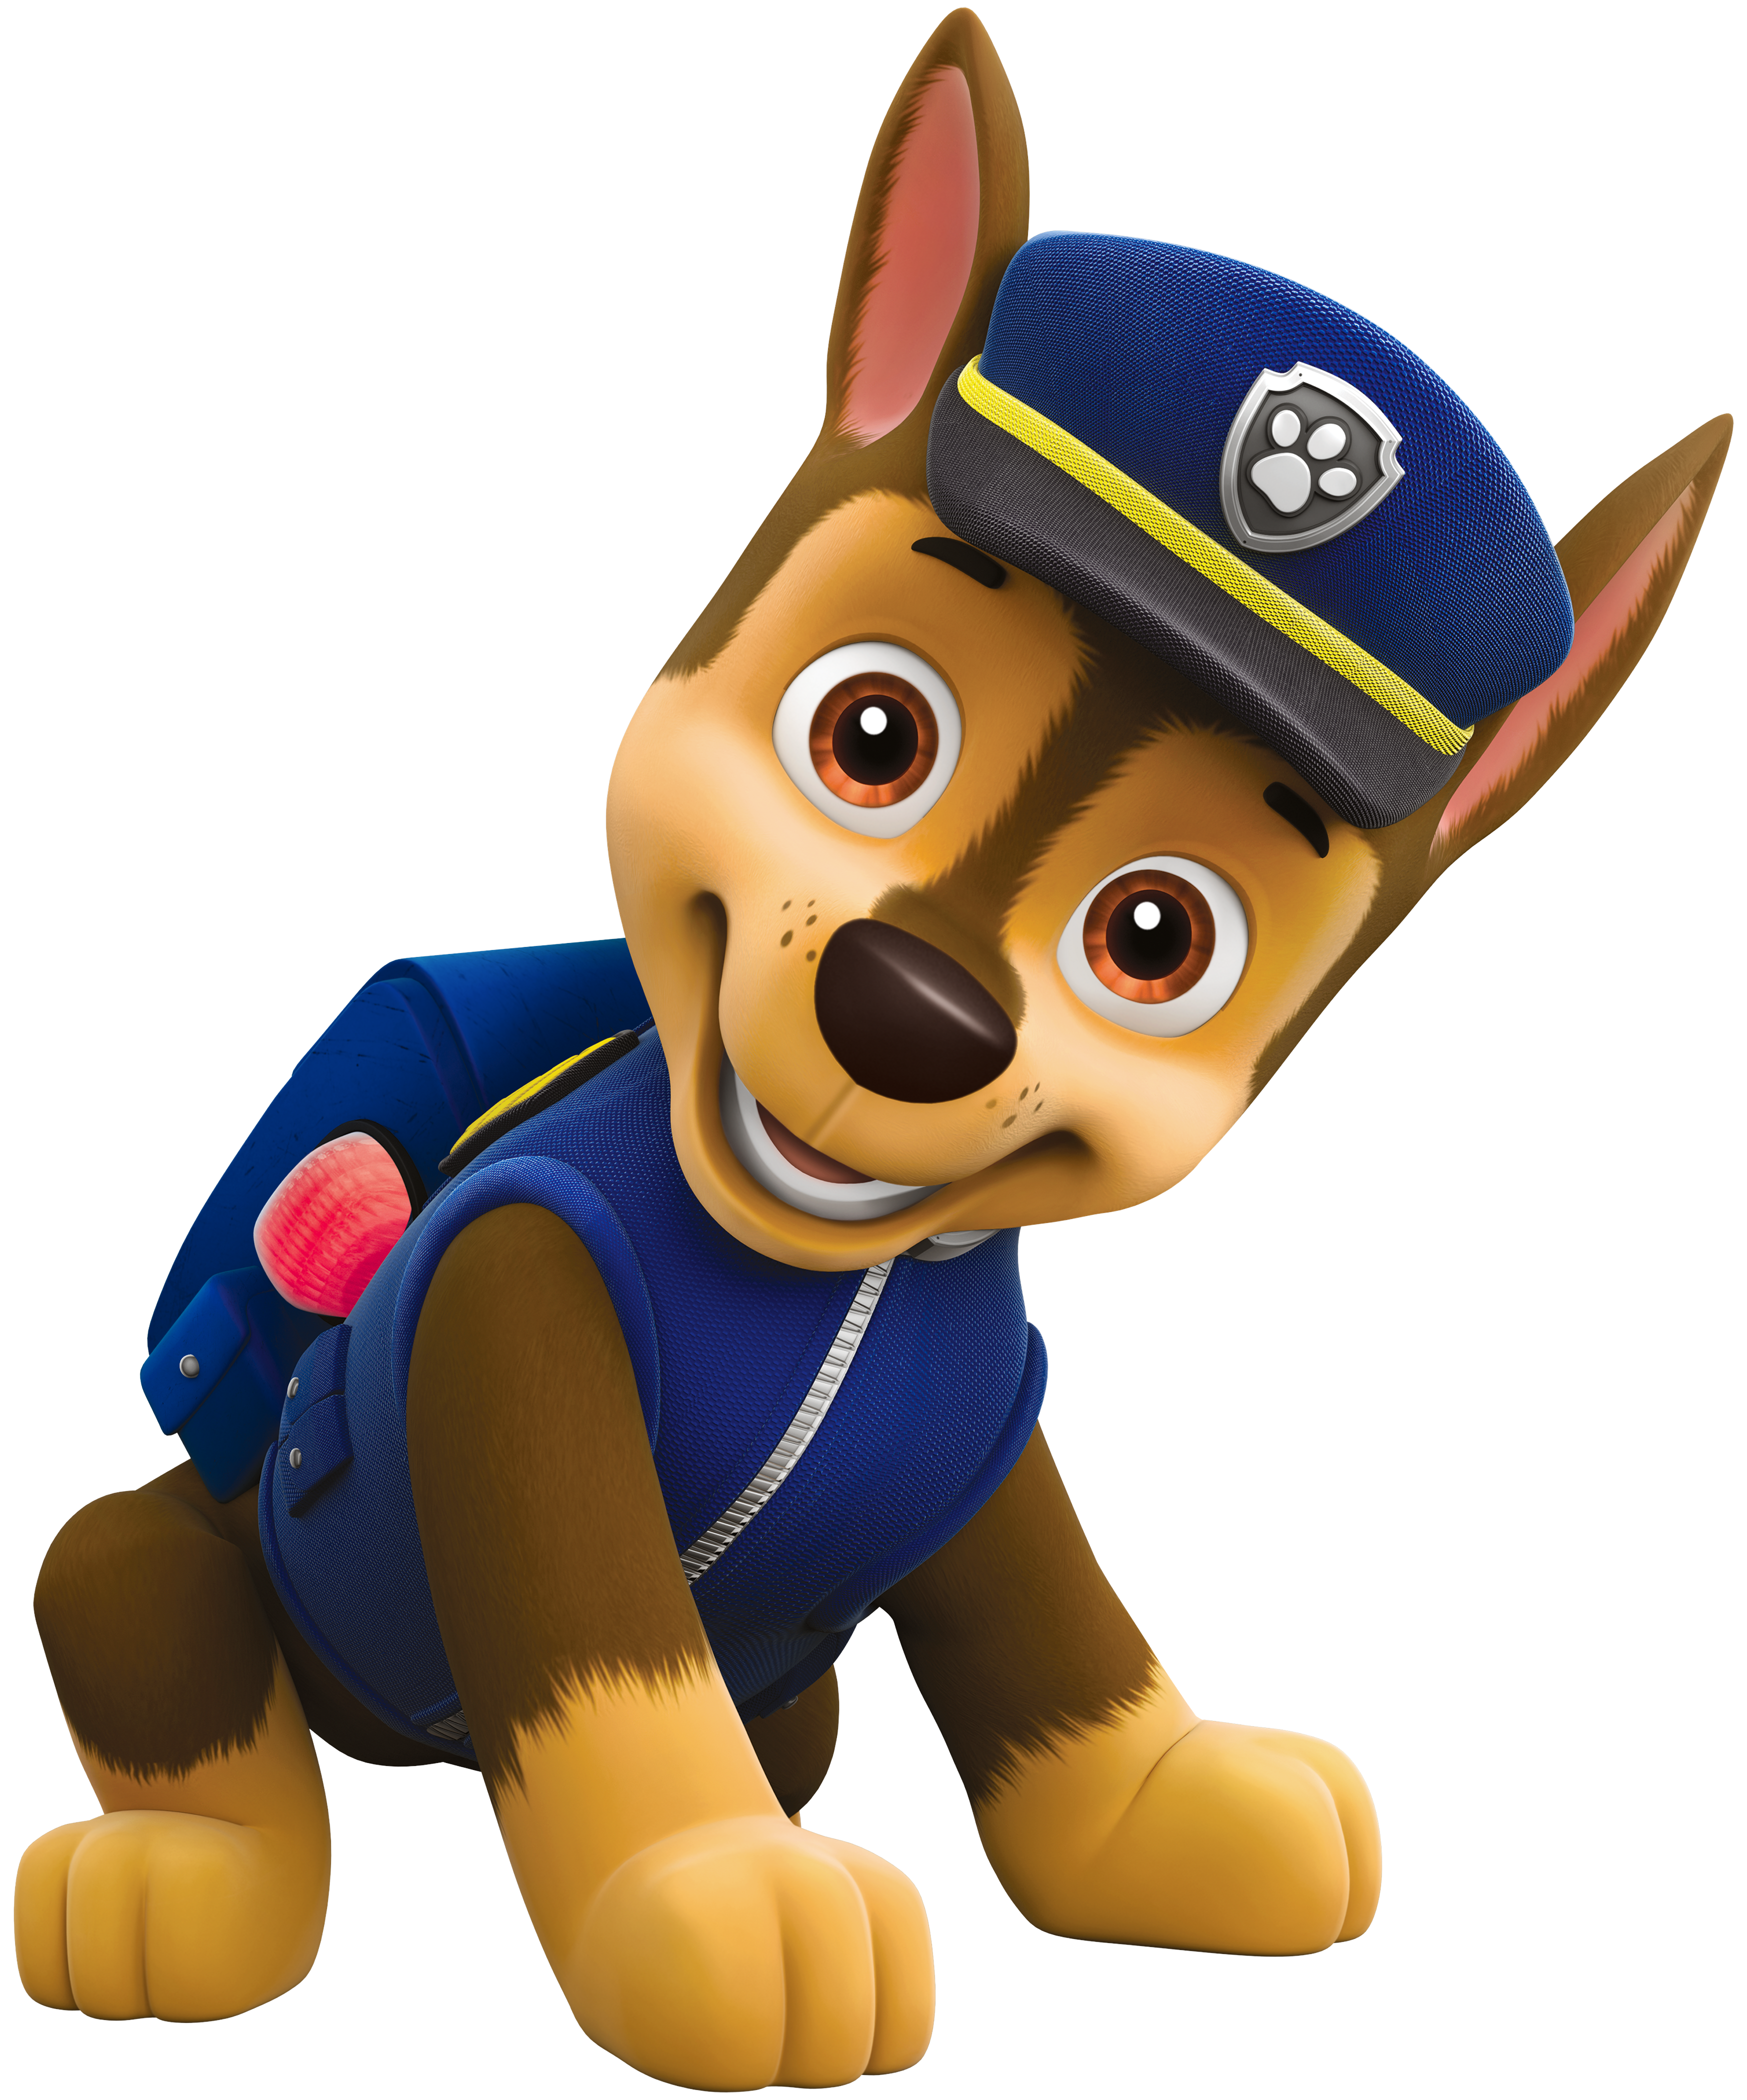 Paw patrol chase clipart picture stock PAW Patrol Chase PNG Cartoon Image | Gallery Yopriceville - High ... picture stock